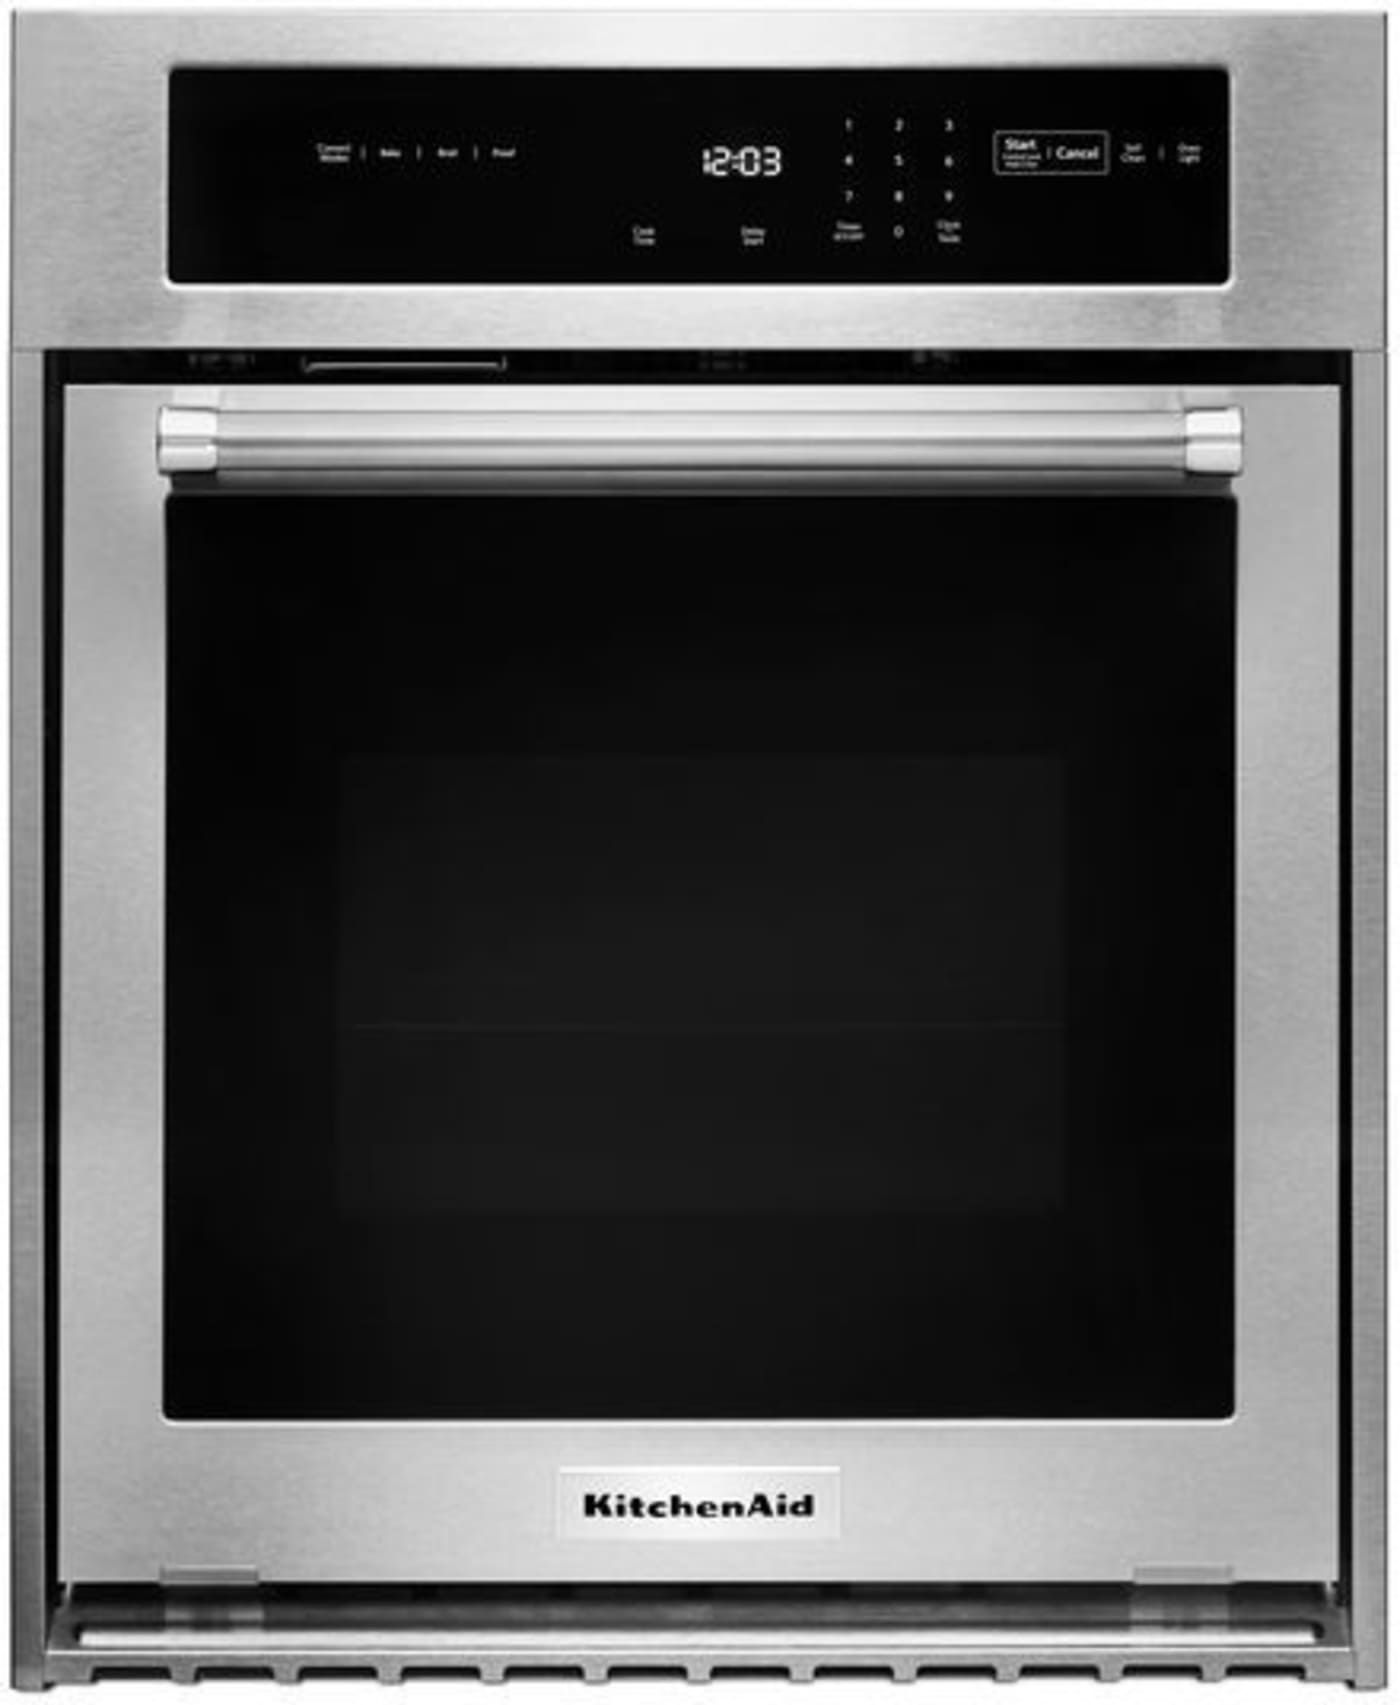 Kosc504ess By Kitchenaid Single Wall Ovens Goedekers Com Single Wall Oven Electric Wall Oven Stainless Steel Oven